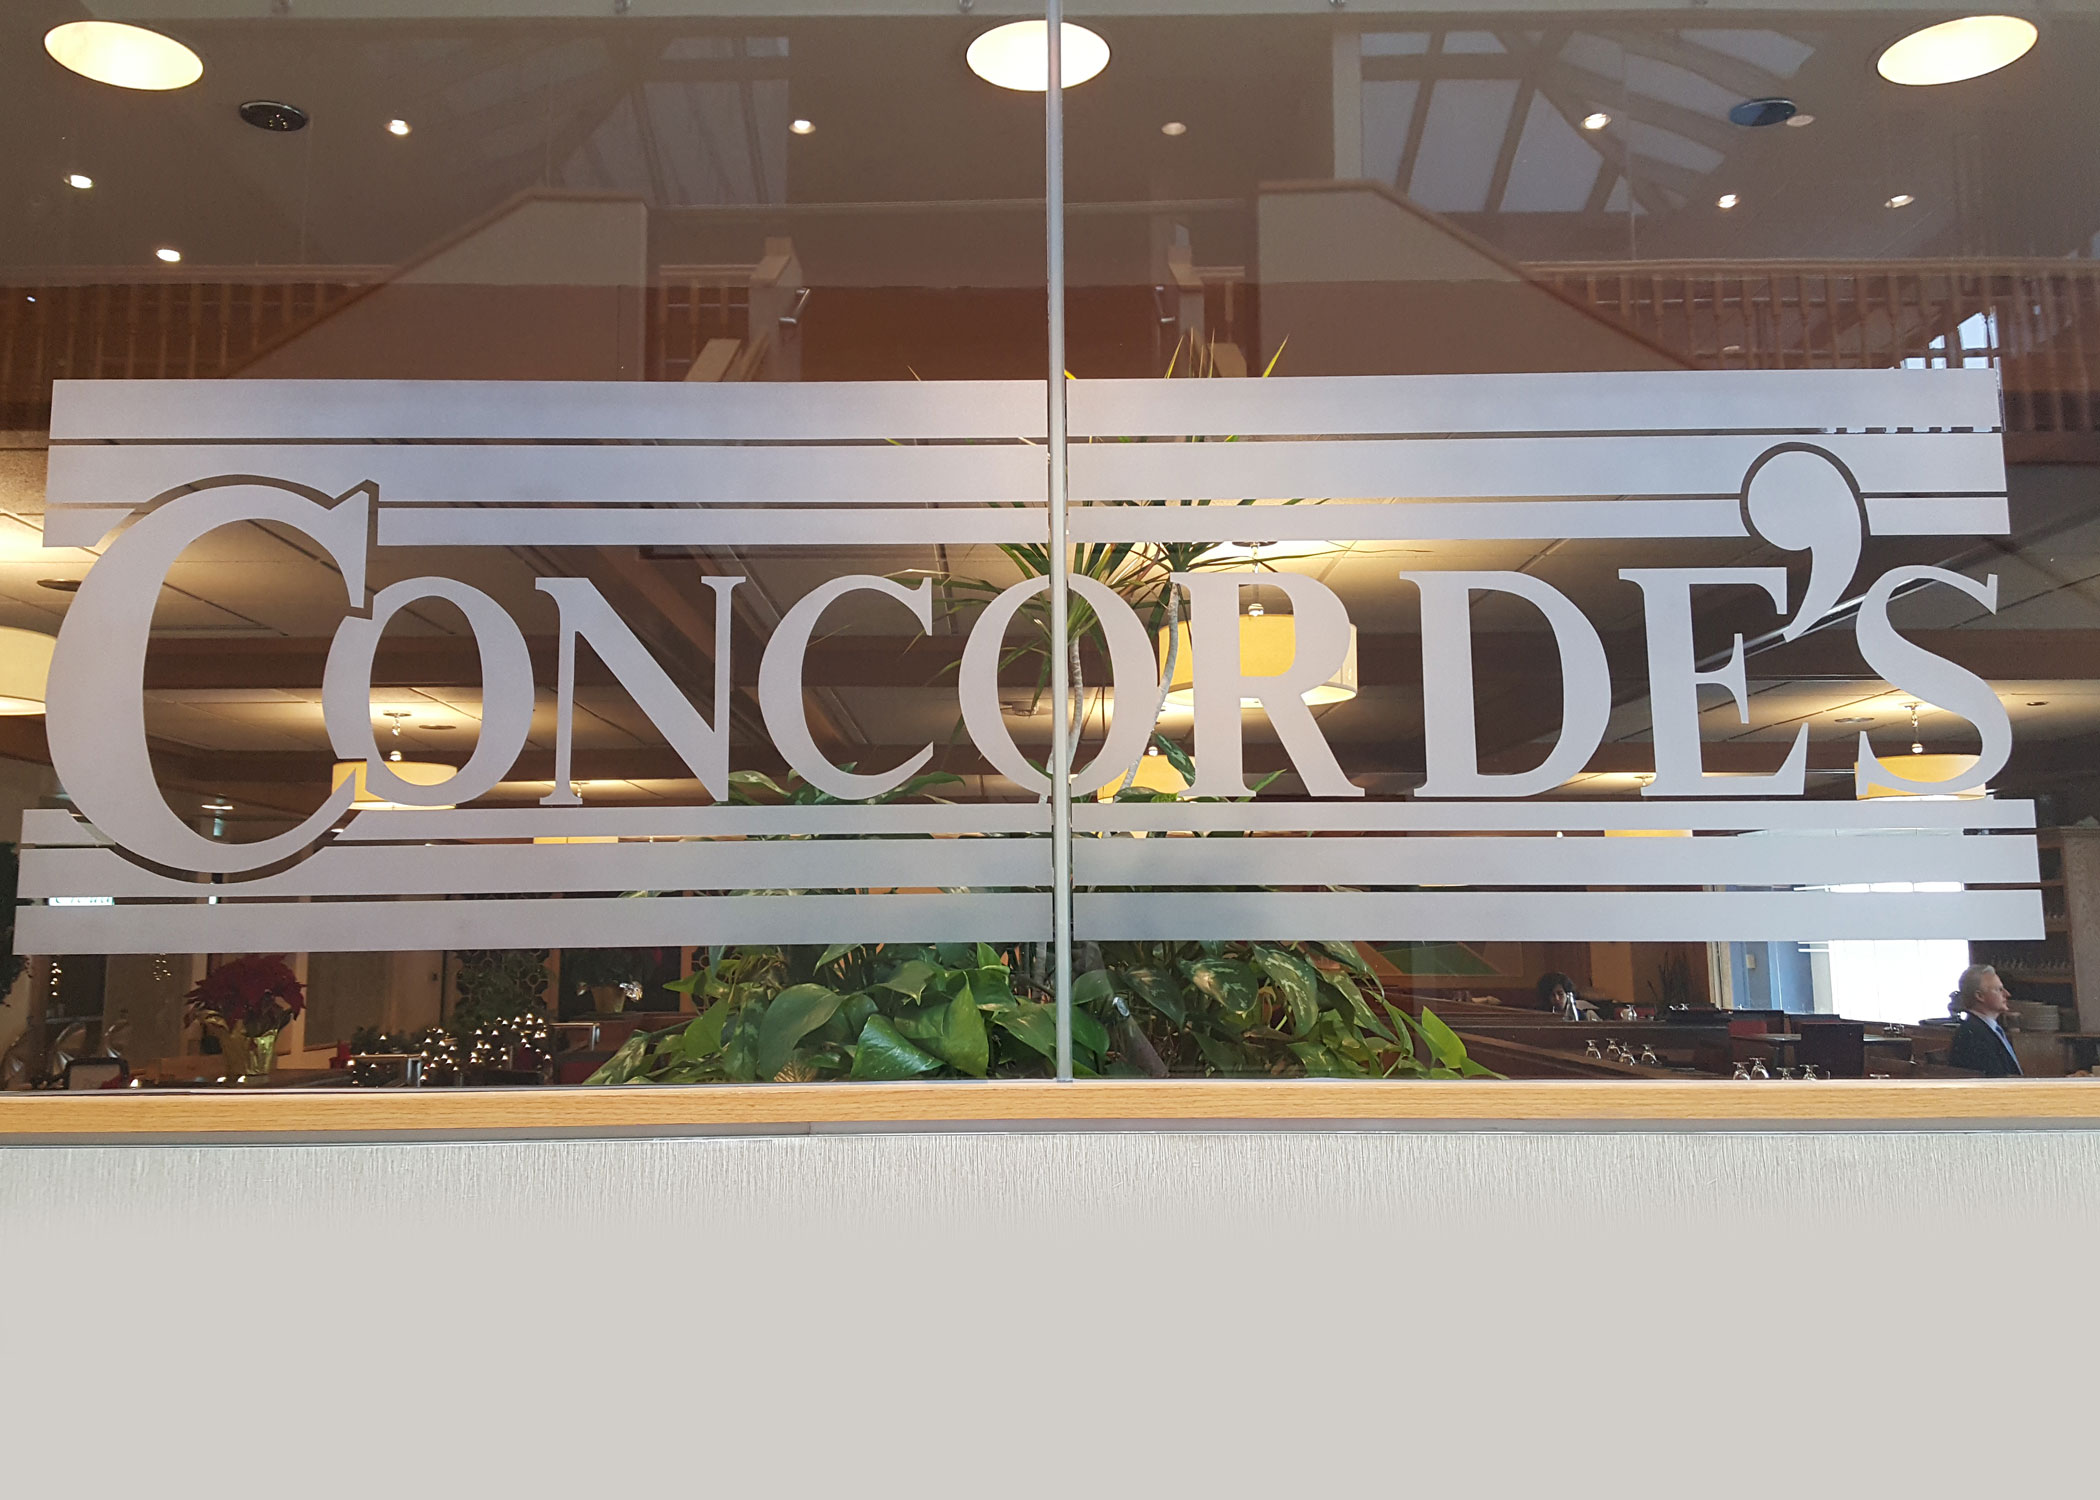 Concorde's (at the Sheraton)